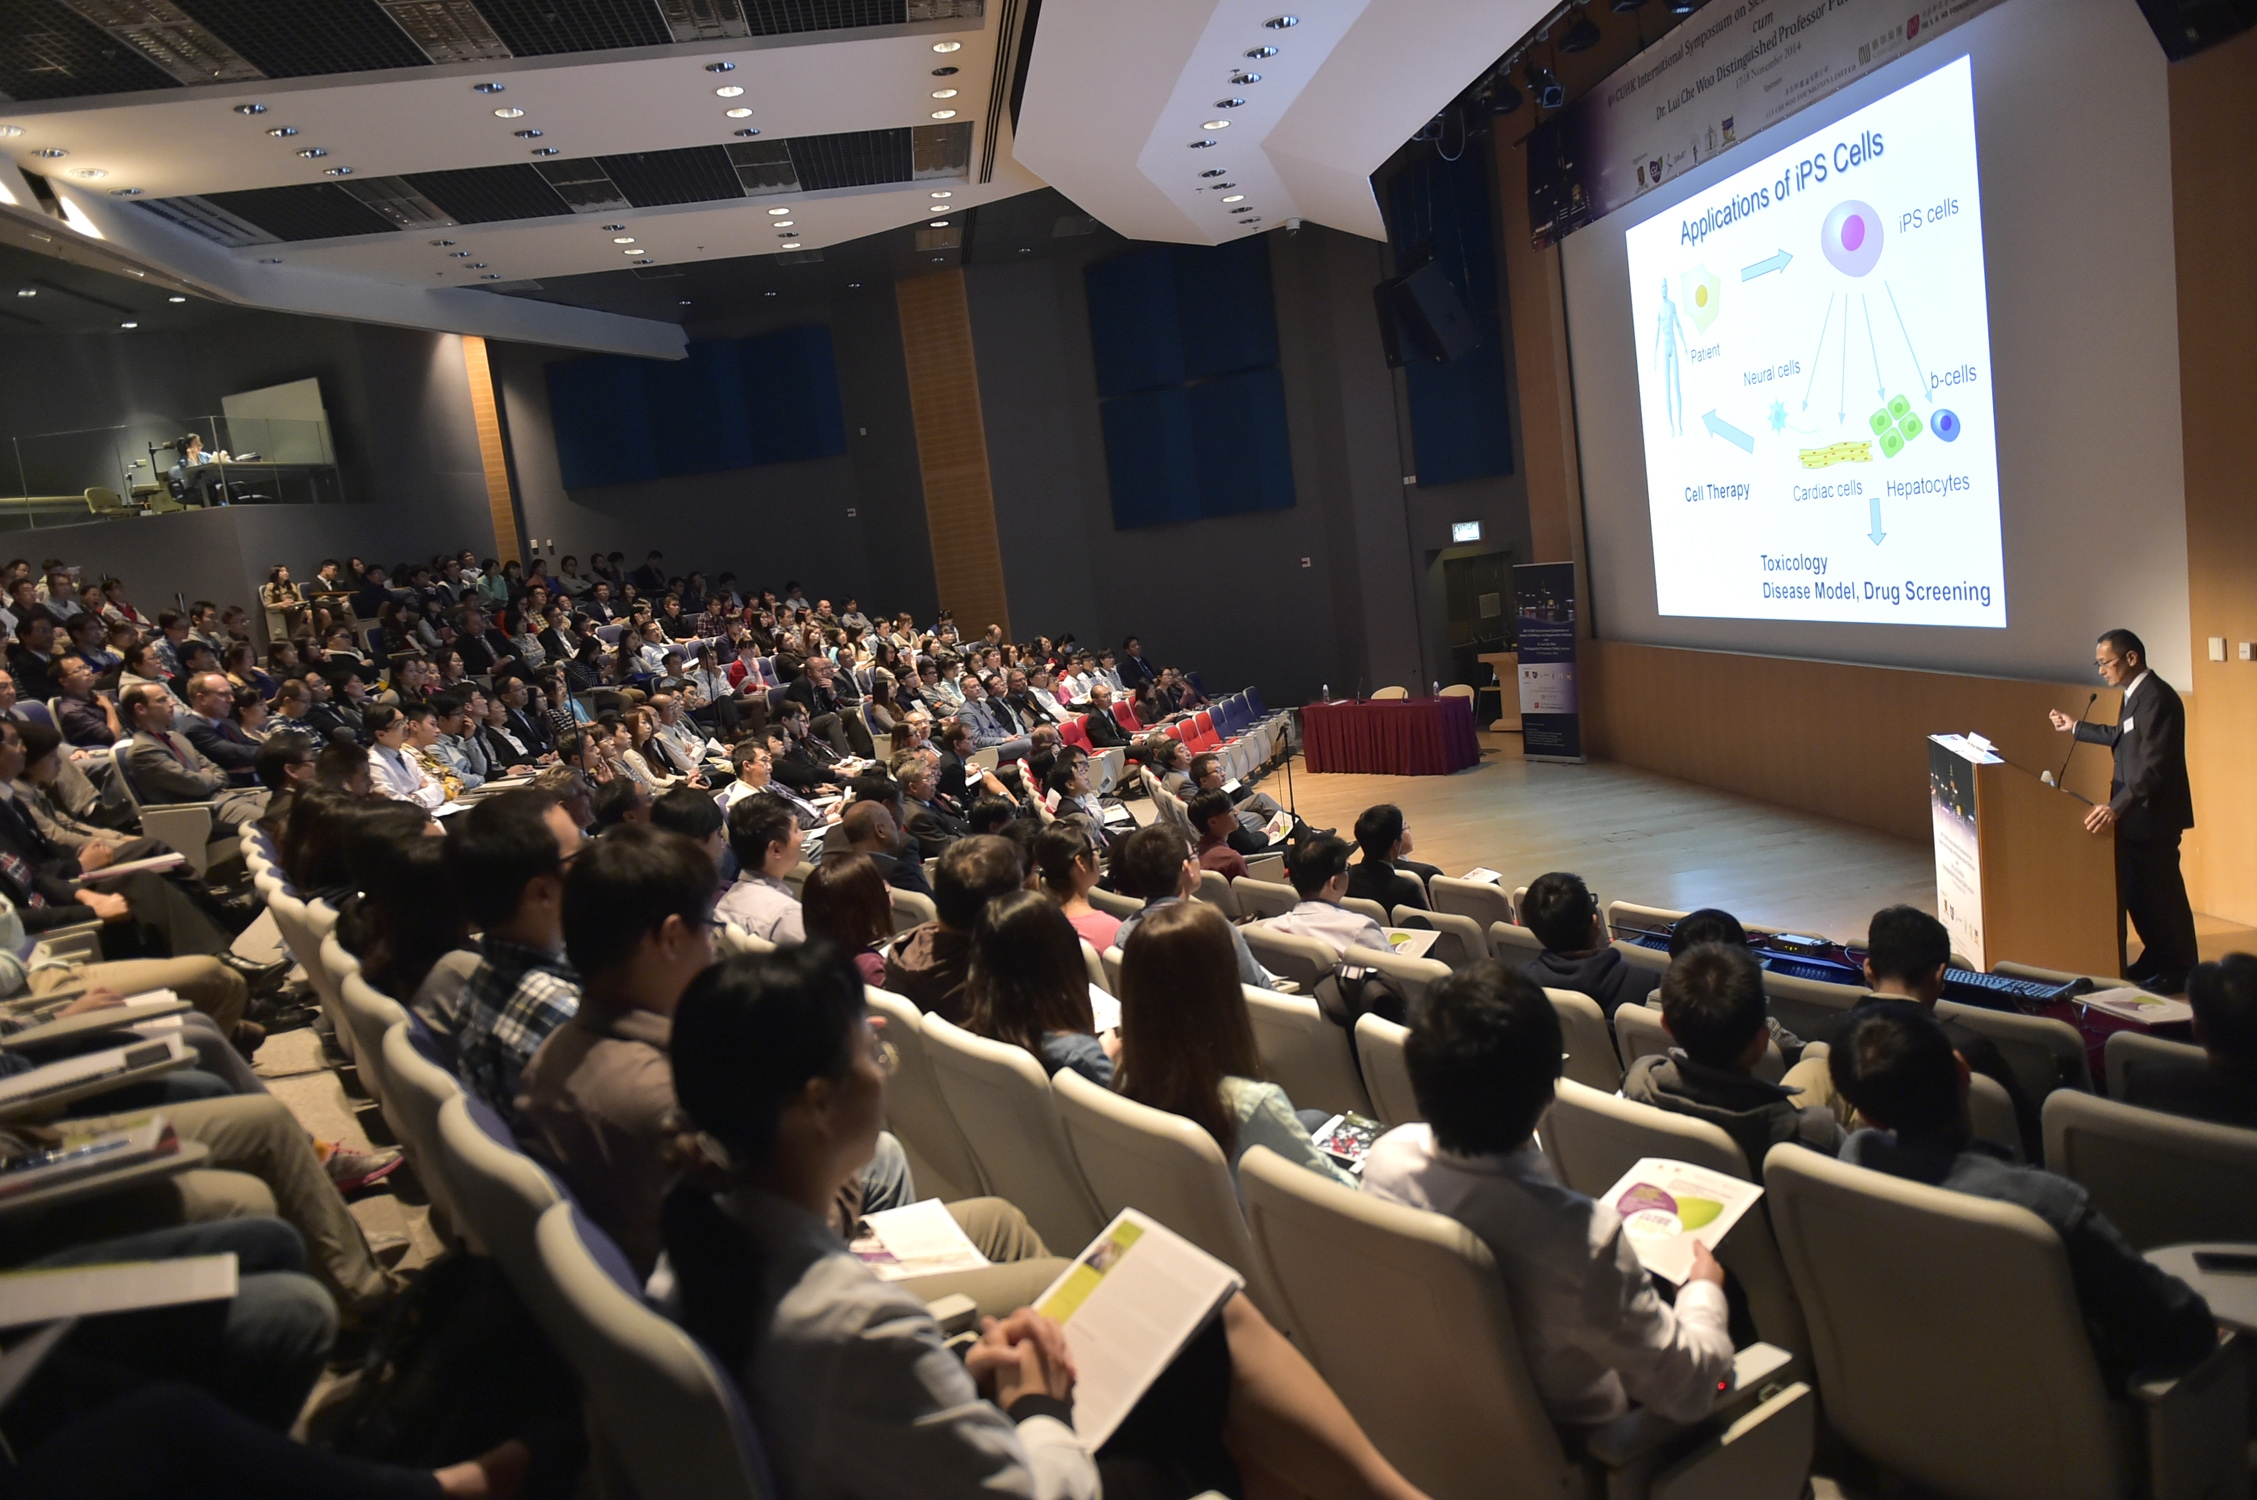 The 'Dr Lui Che Woo Distinguished Professor Public Lecture' draws over 300 guests in attendance.